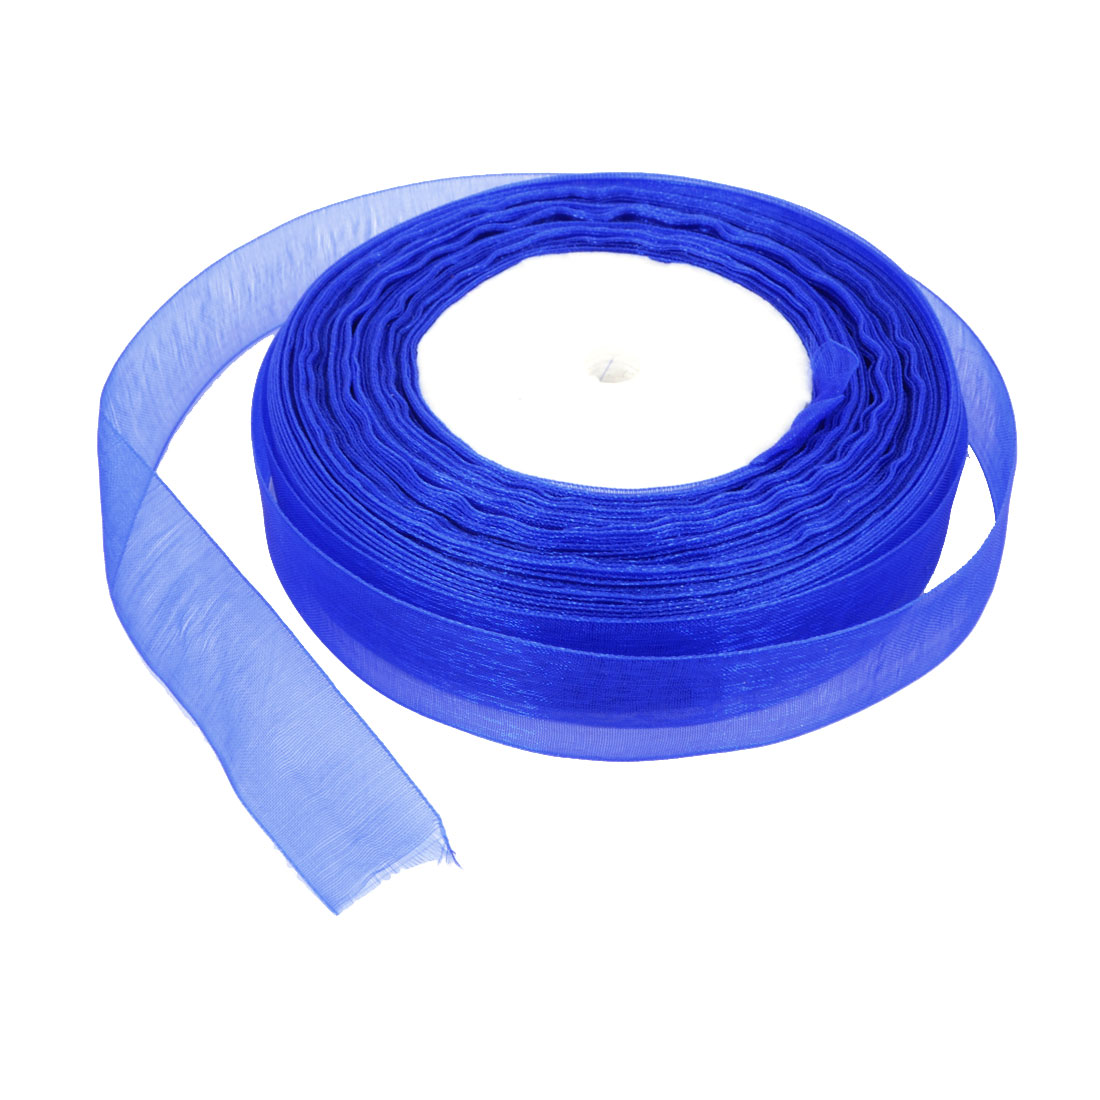 20mm x50 yard Stain Edge Sheer Organza Ribbon Roll Tape Royal Blue for Gift Wrapping DIY Craft Festival Ornament